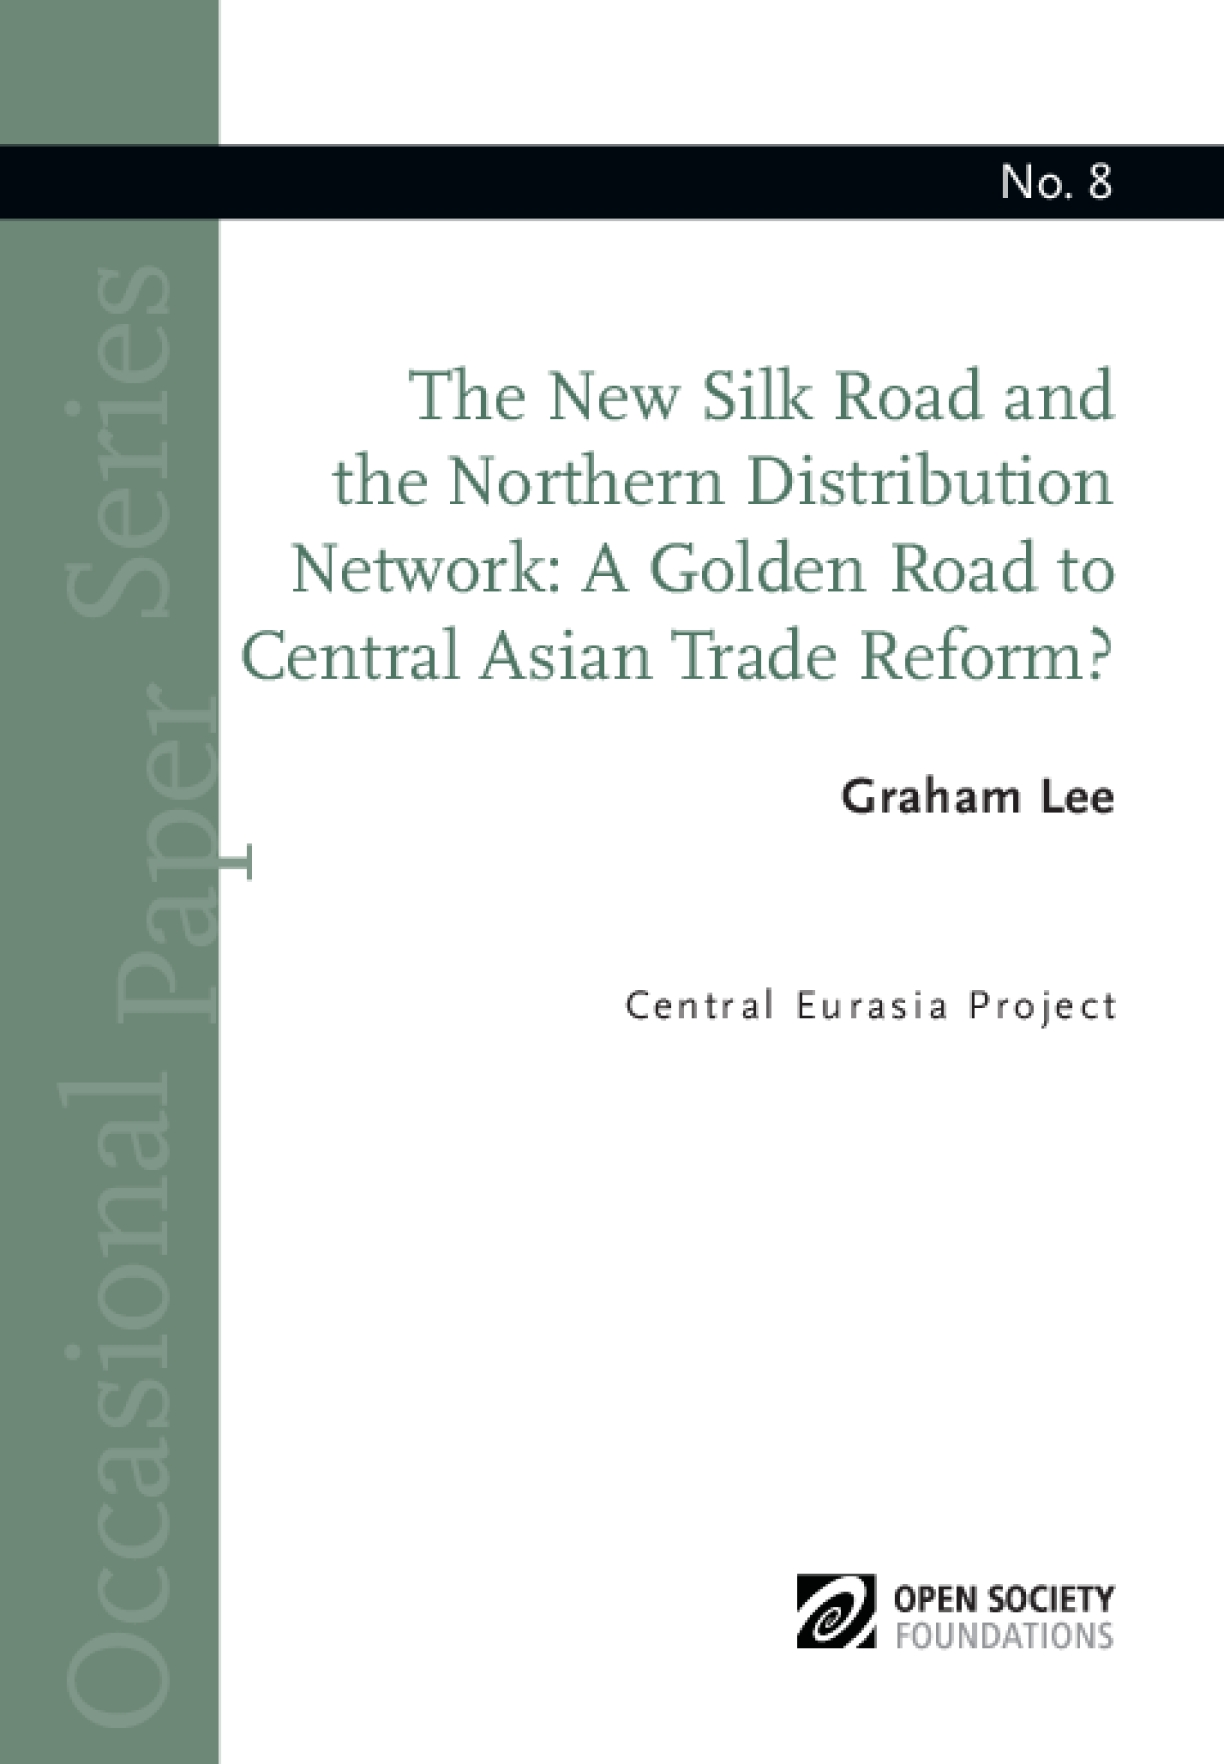 The New Silk Road and the Northern Distribution Network: A Golden Road to Central Asian Trade Reform?